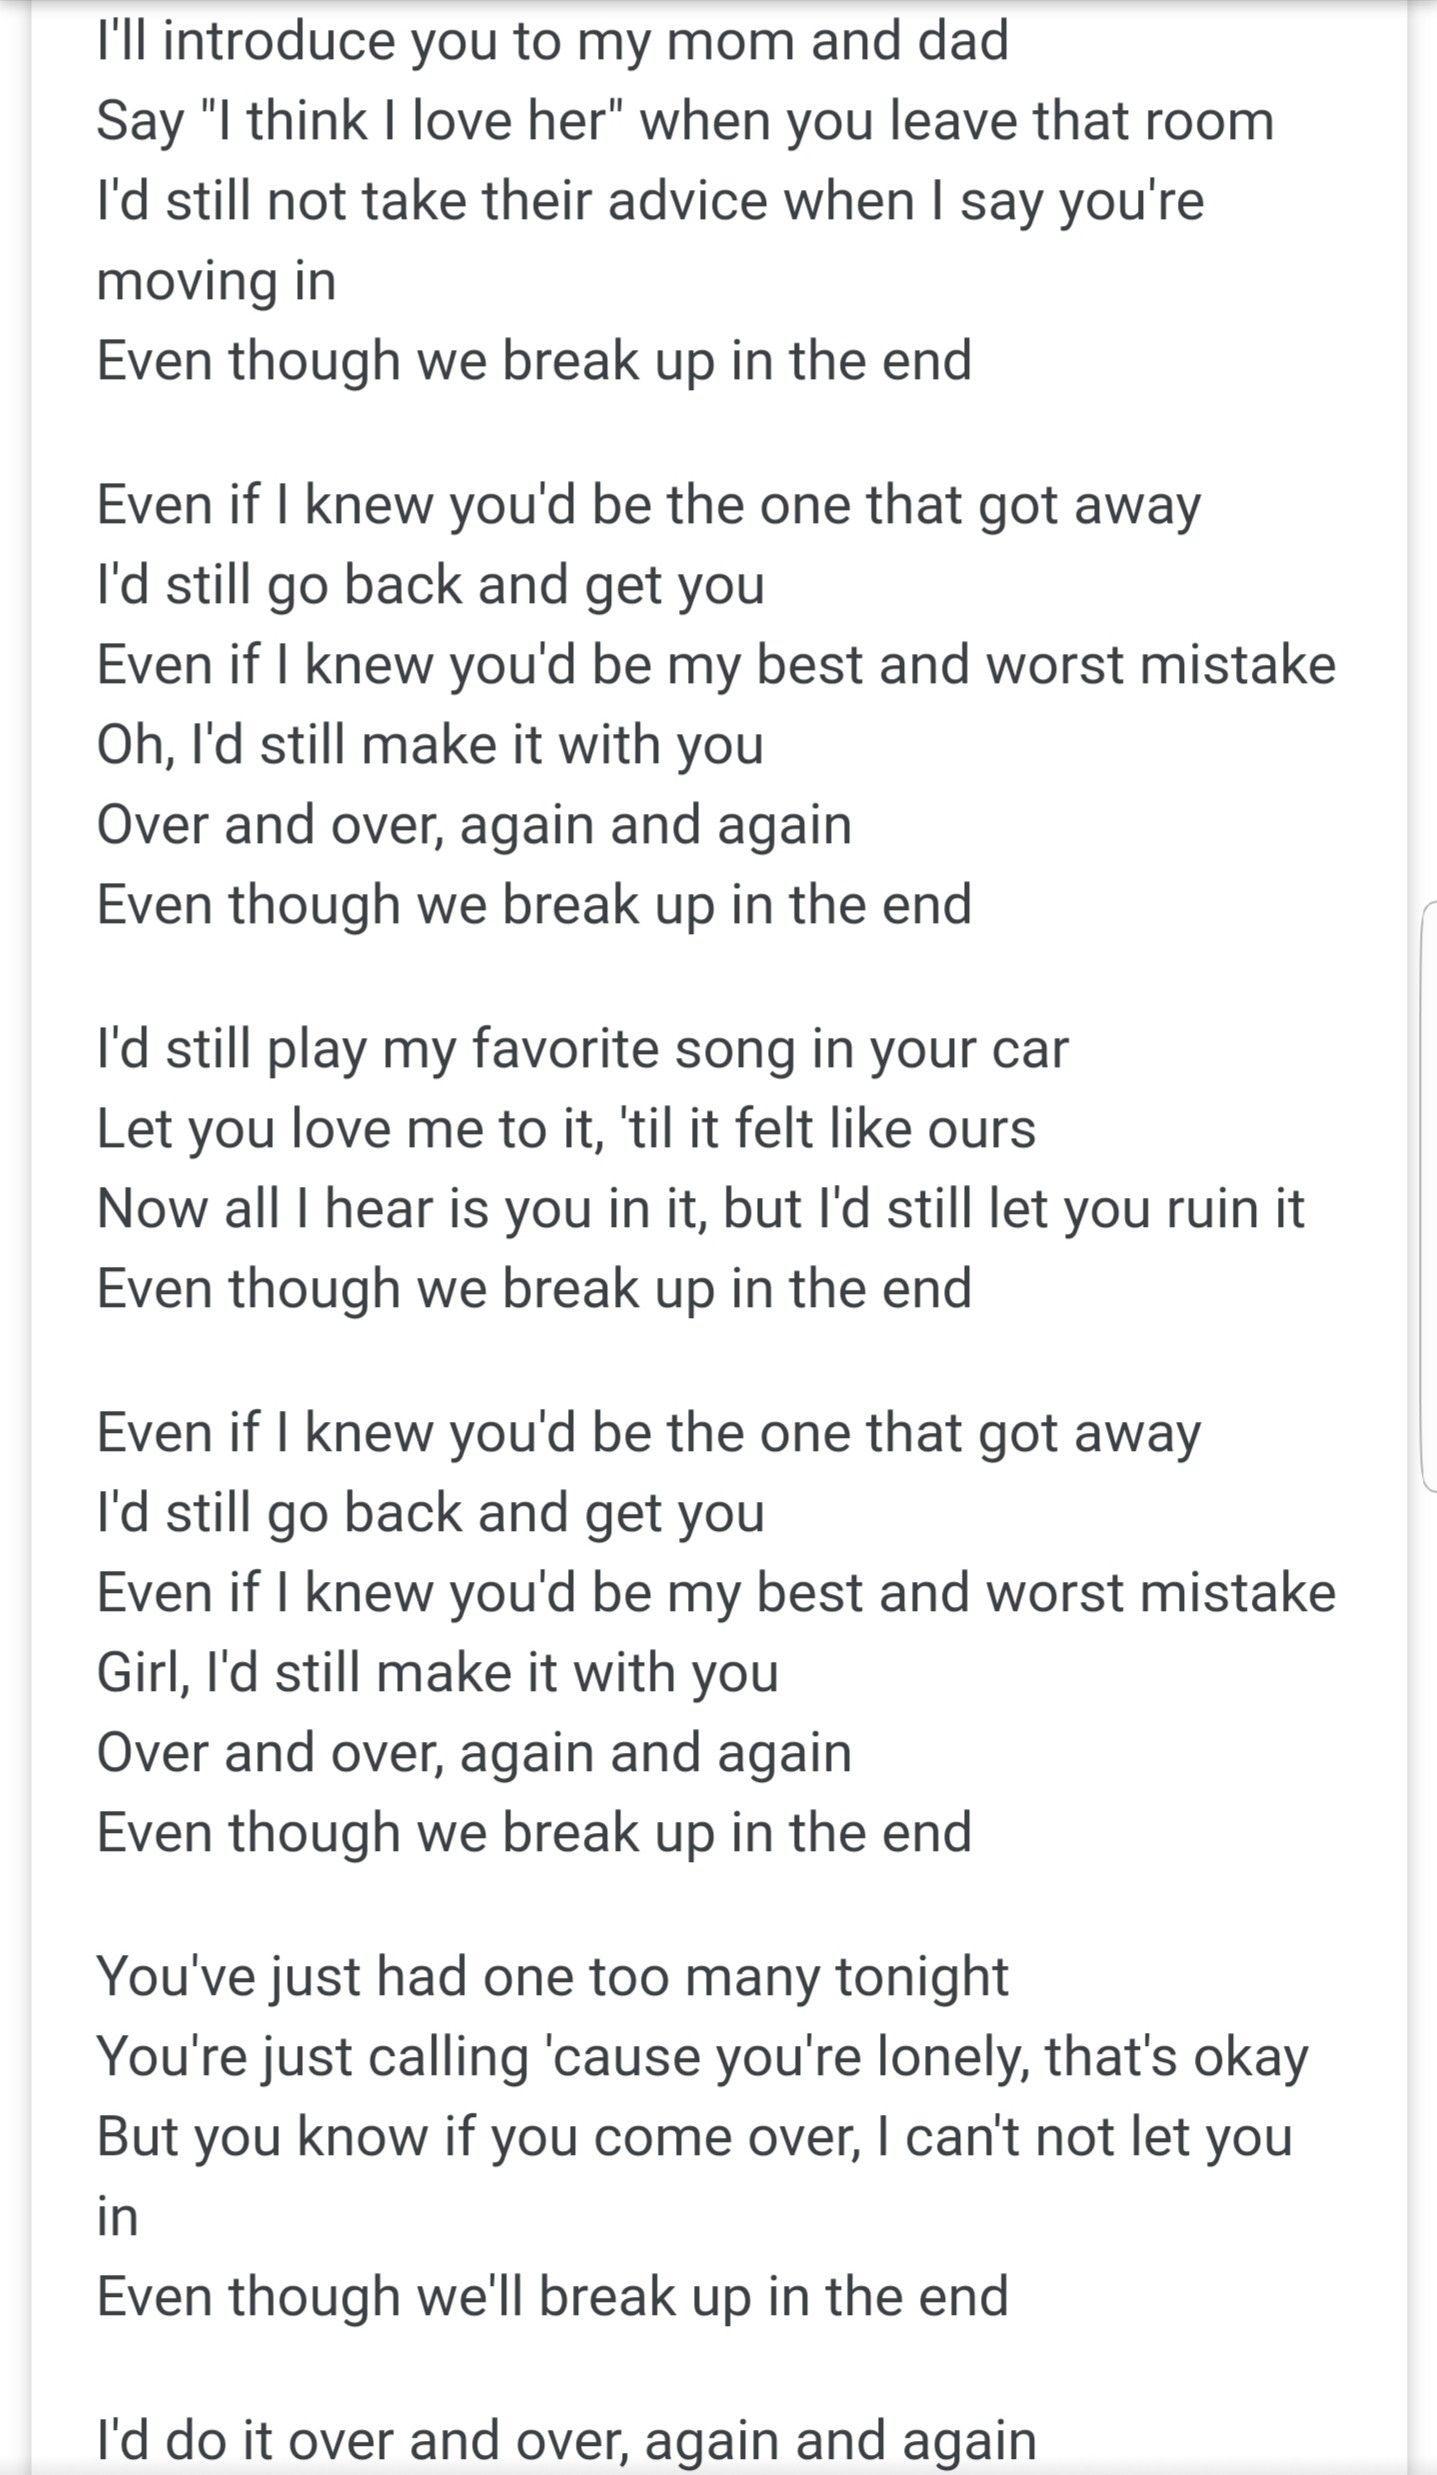 Cole Swindell Break Up In The End One Of The Most Heartfealt